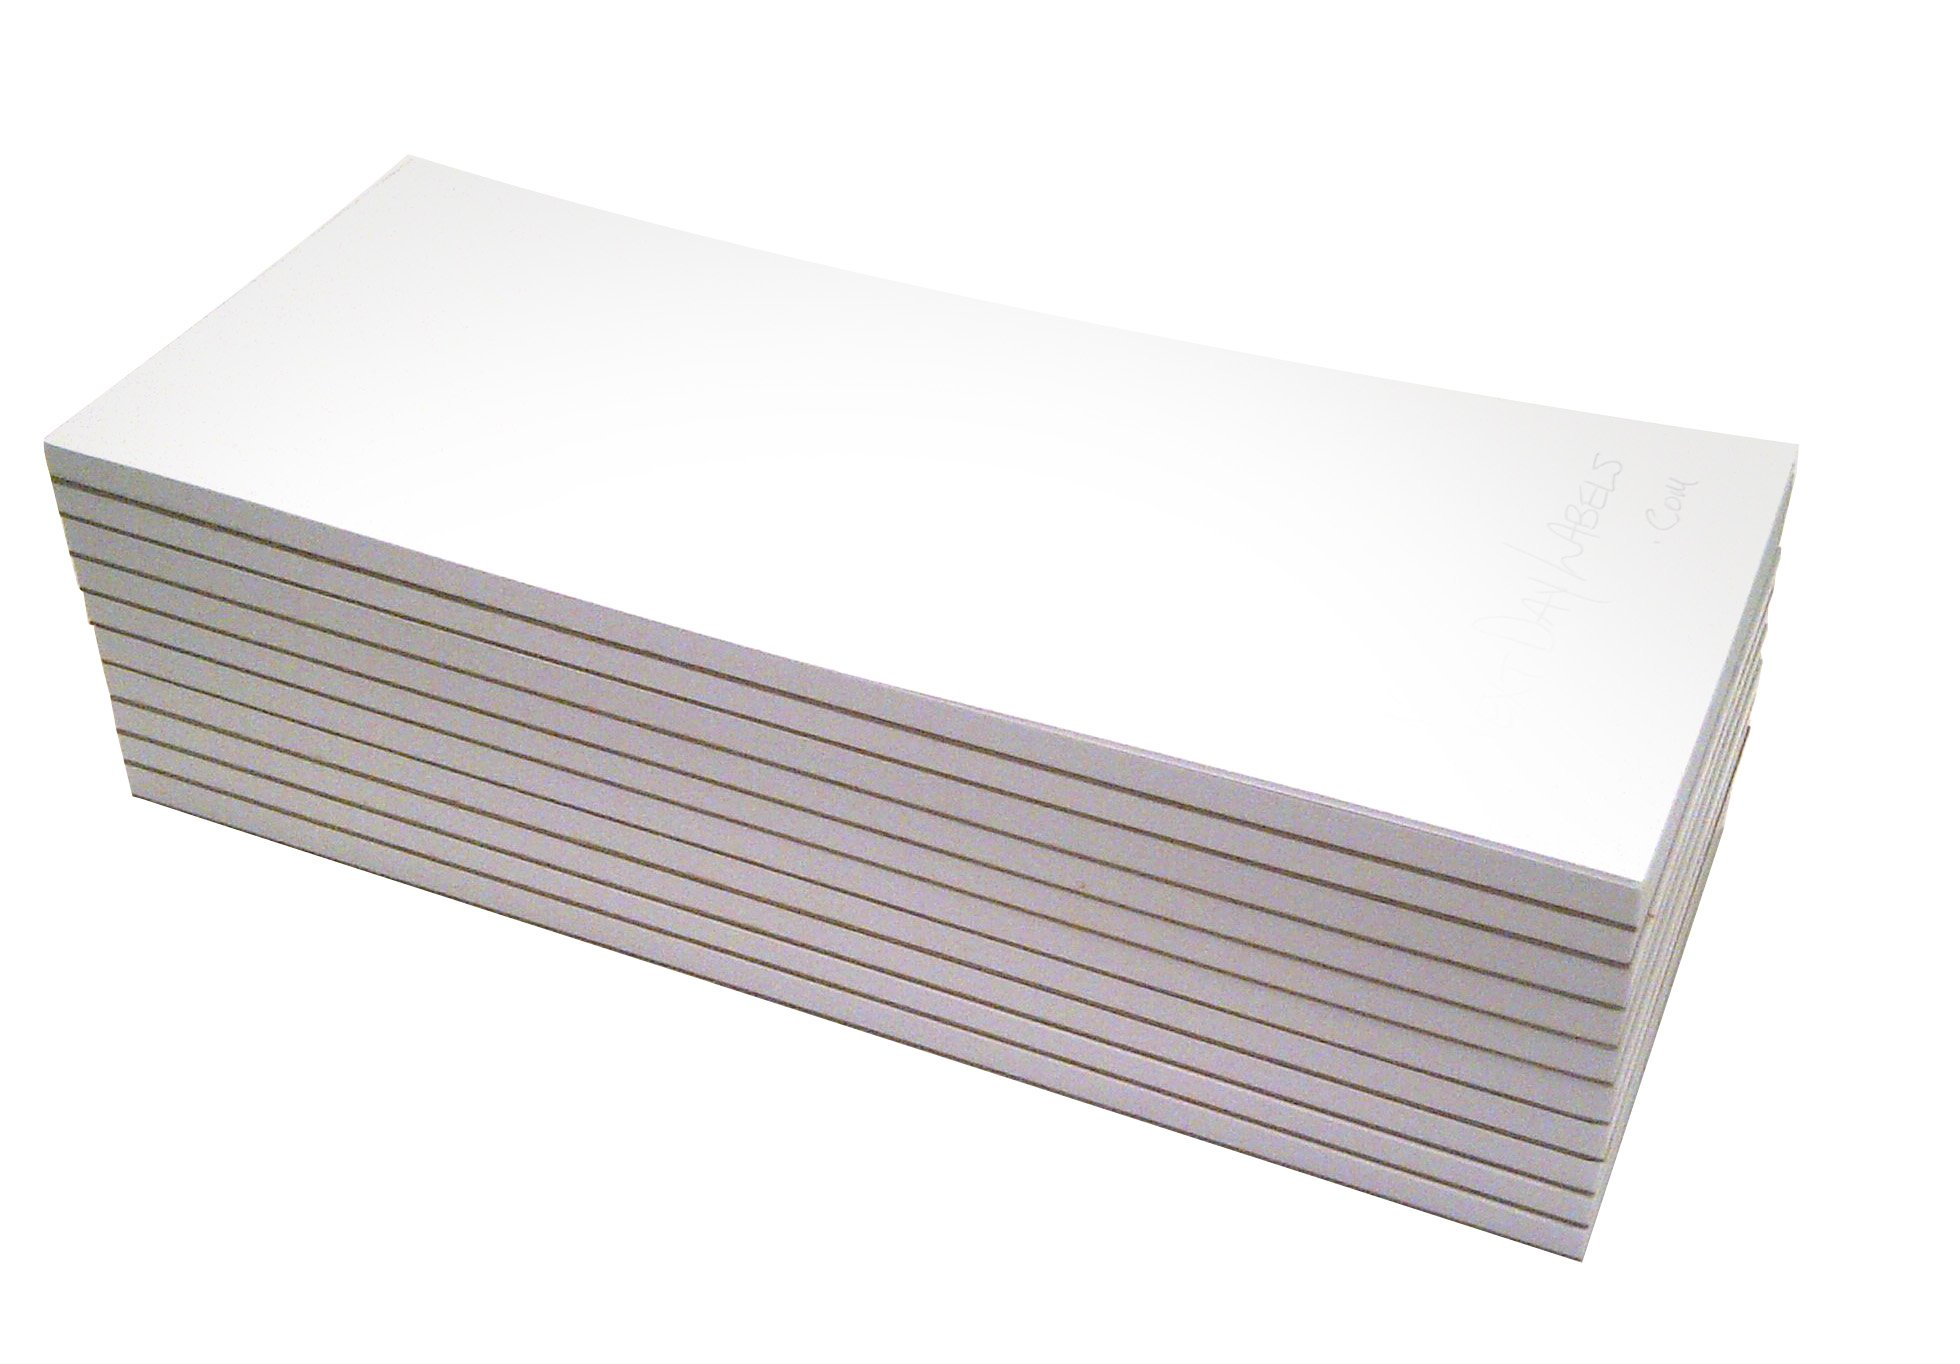 Memo Pads - Note Pads - Scratch Pads - Writing pads - 10 Pads with 50 sheets in Each Pad (3-1/2 x 8-1/2 Inches)